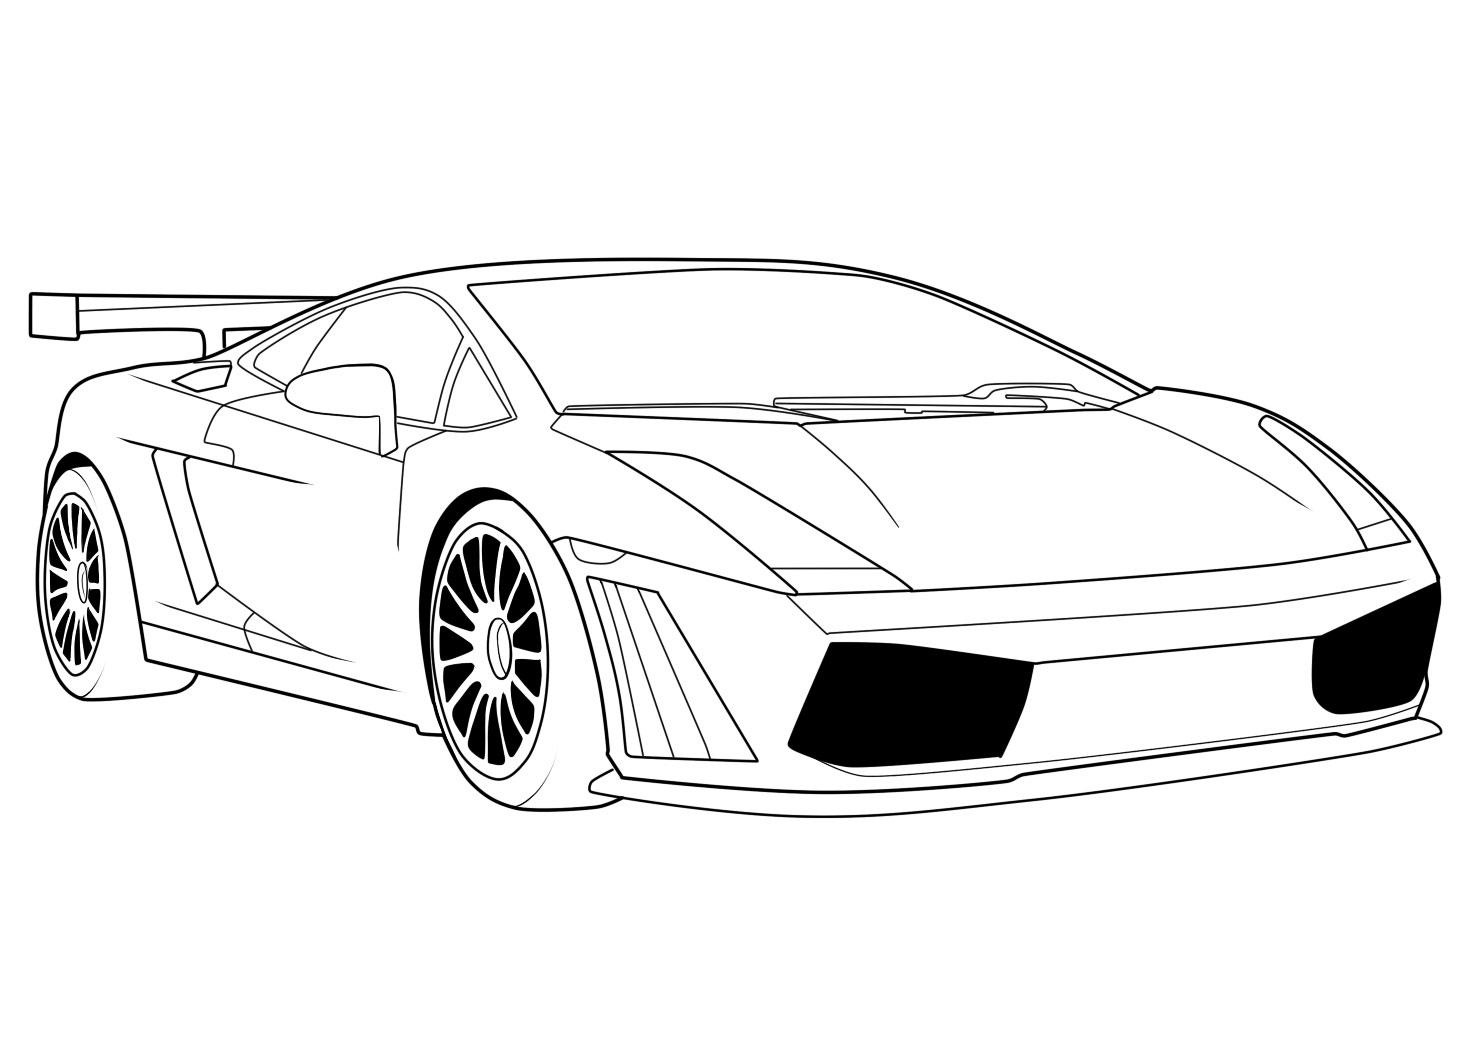 colouring in pictures of cars cars 3 for kids cars 3 kids coloring pages cars pictures of colouring in